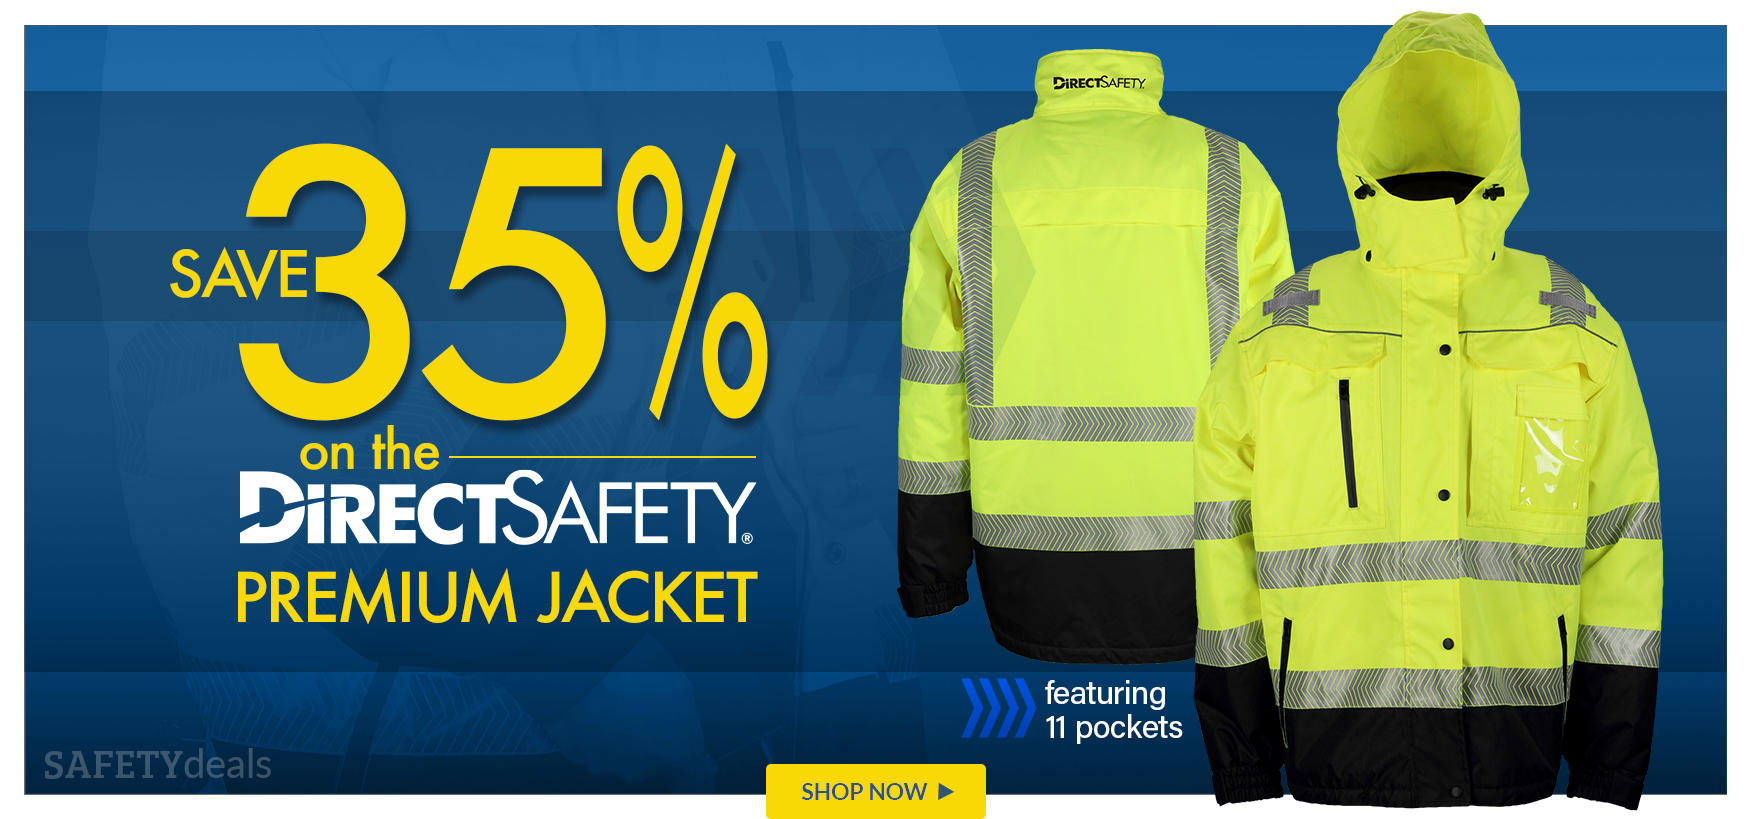 Save 35% on Direct Safety Premium Jacket